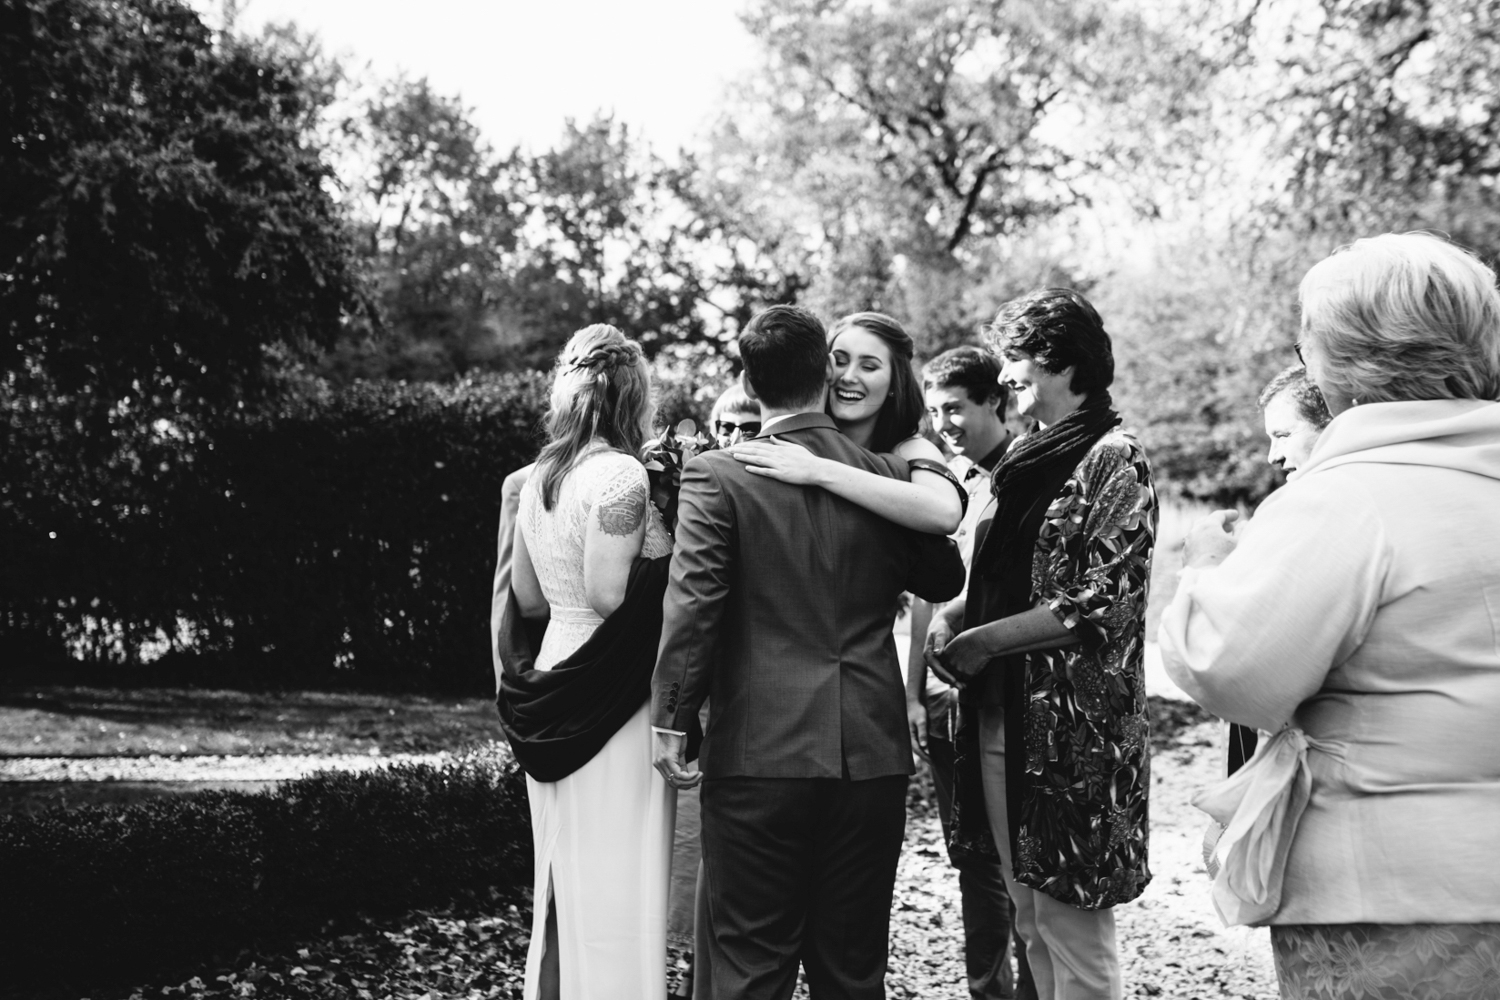 Family embraces bride and groom after wedding ceremony in northern tasmania.